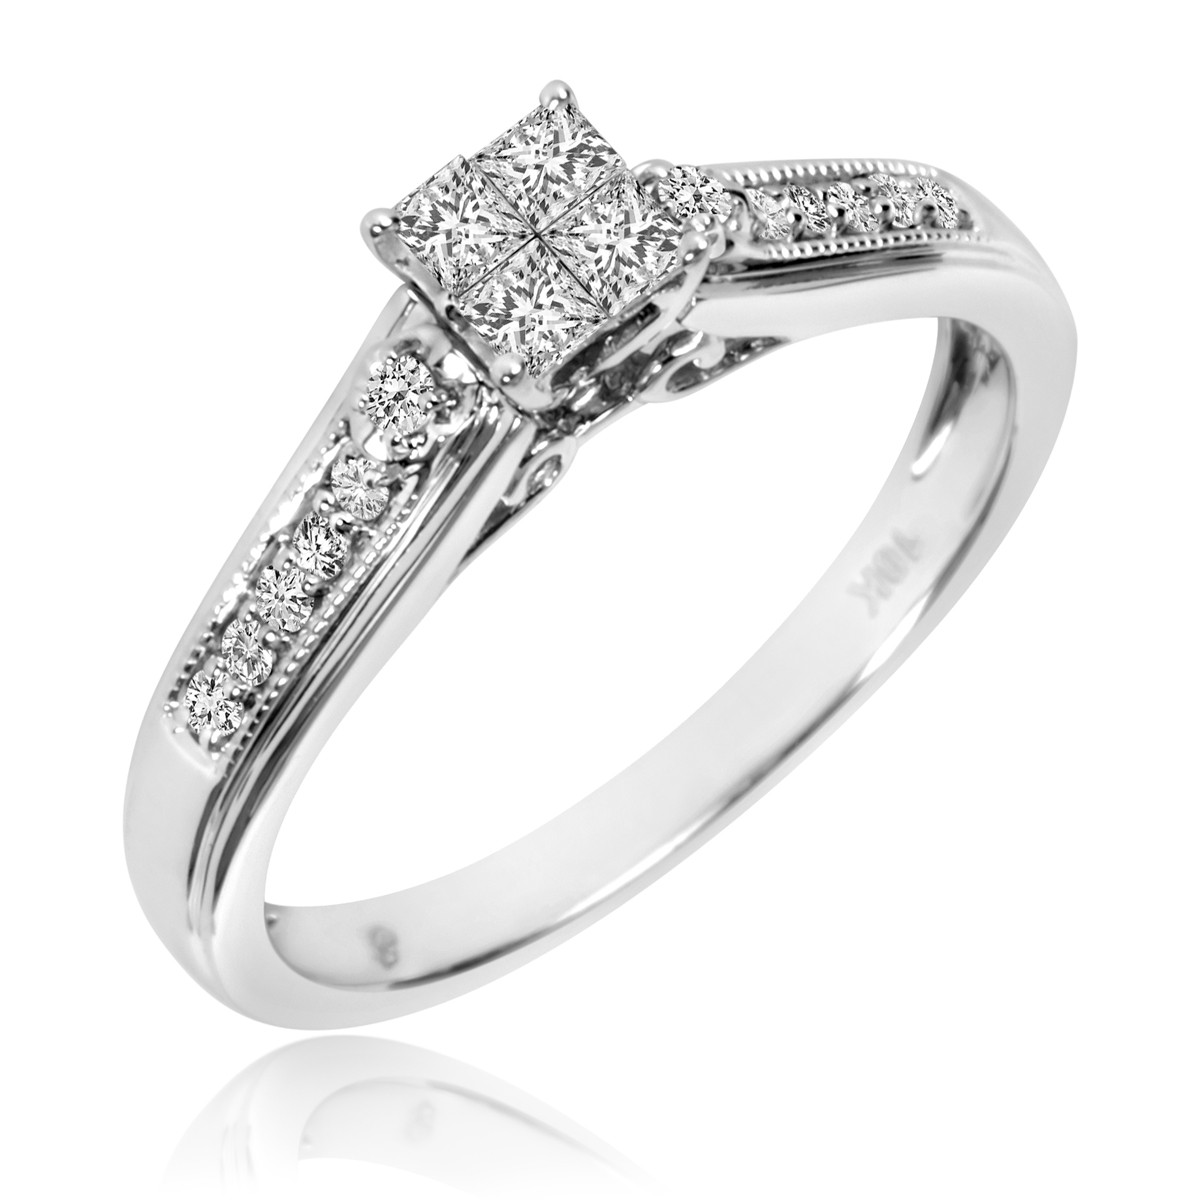 1/4 CT. T.W. Diamond Ladies' Engagement Ring 14K White Gold